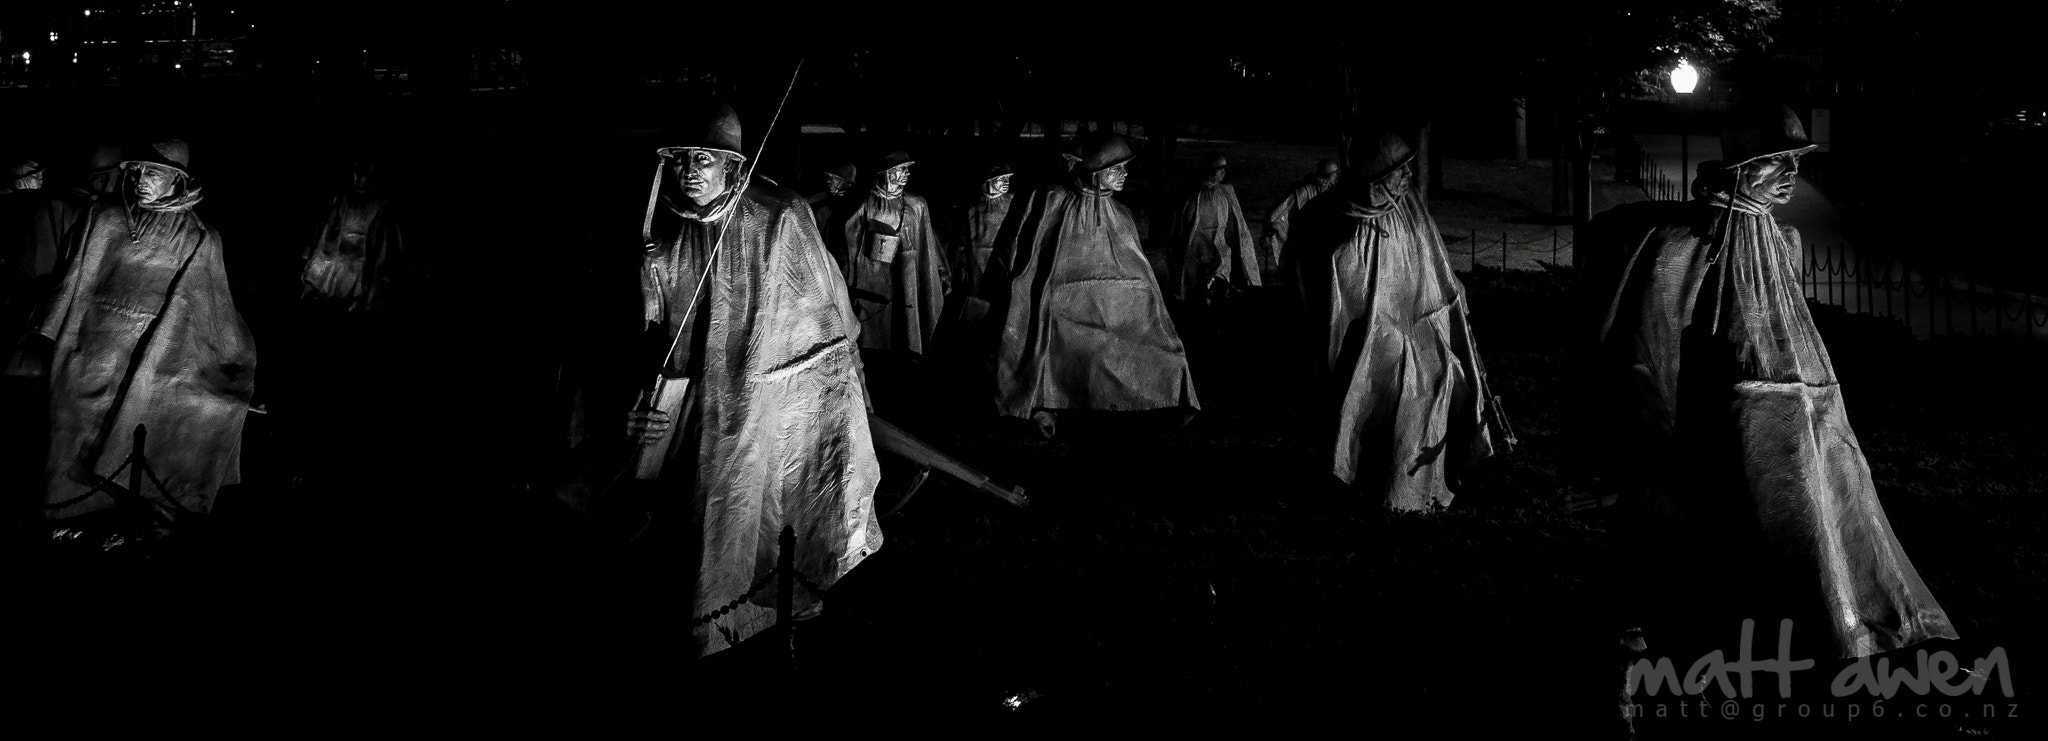 Photograph Korean War Veterans Memorial by Matt Dwen on 500px